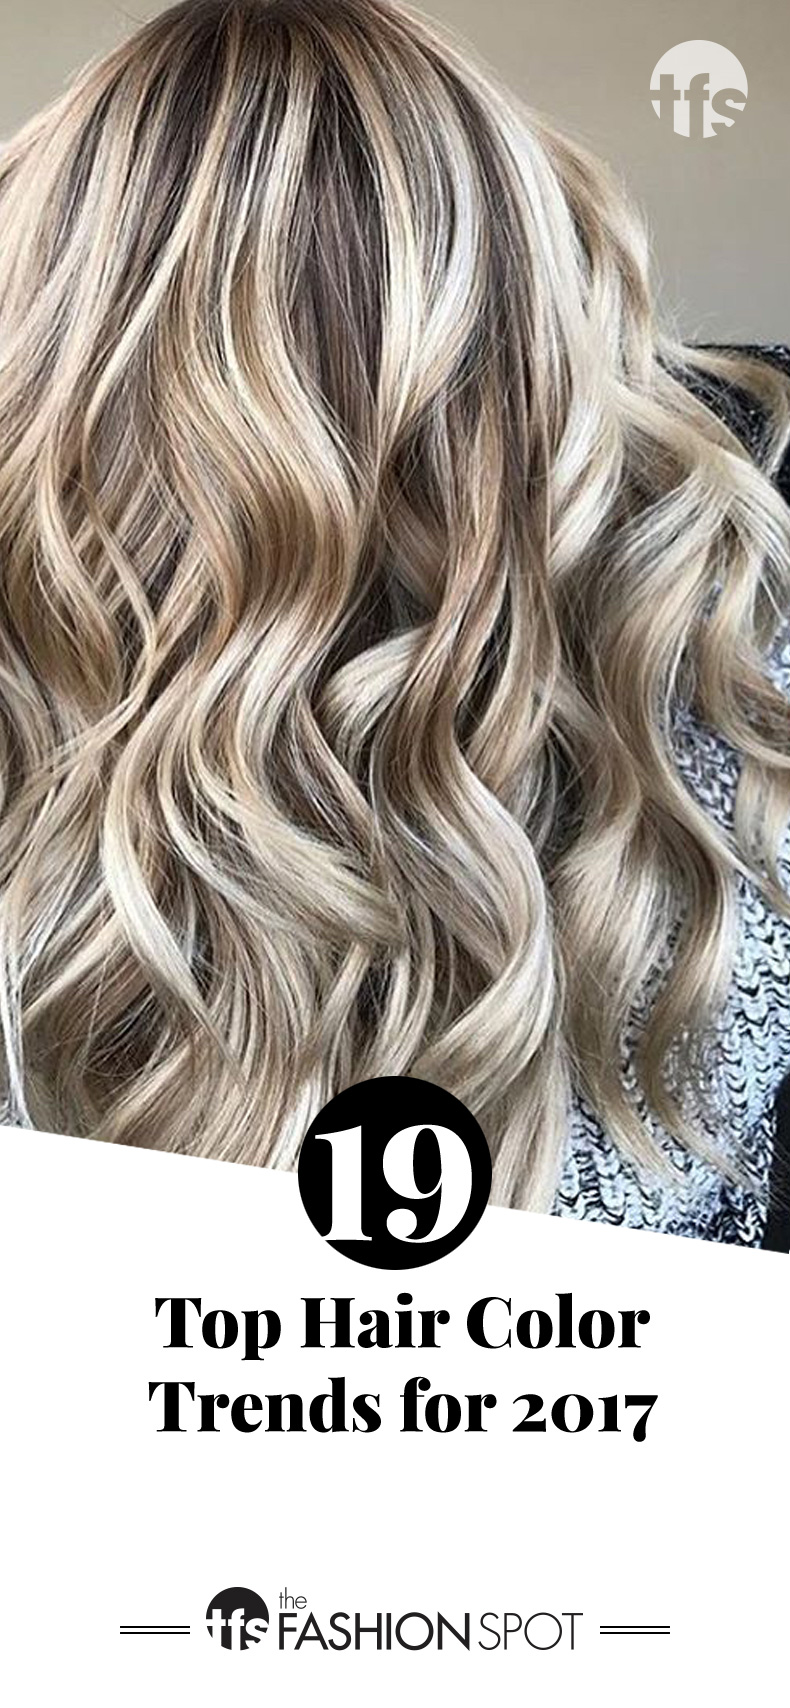 Popular color trends 2017 - Popular Hair Color Trends For 2017